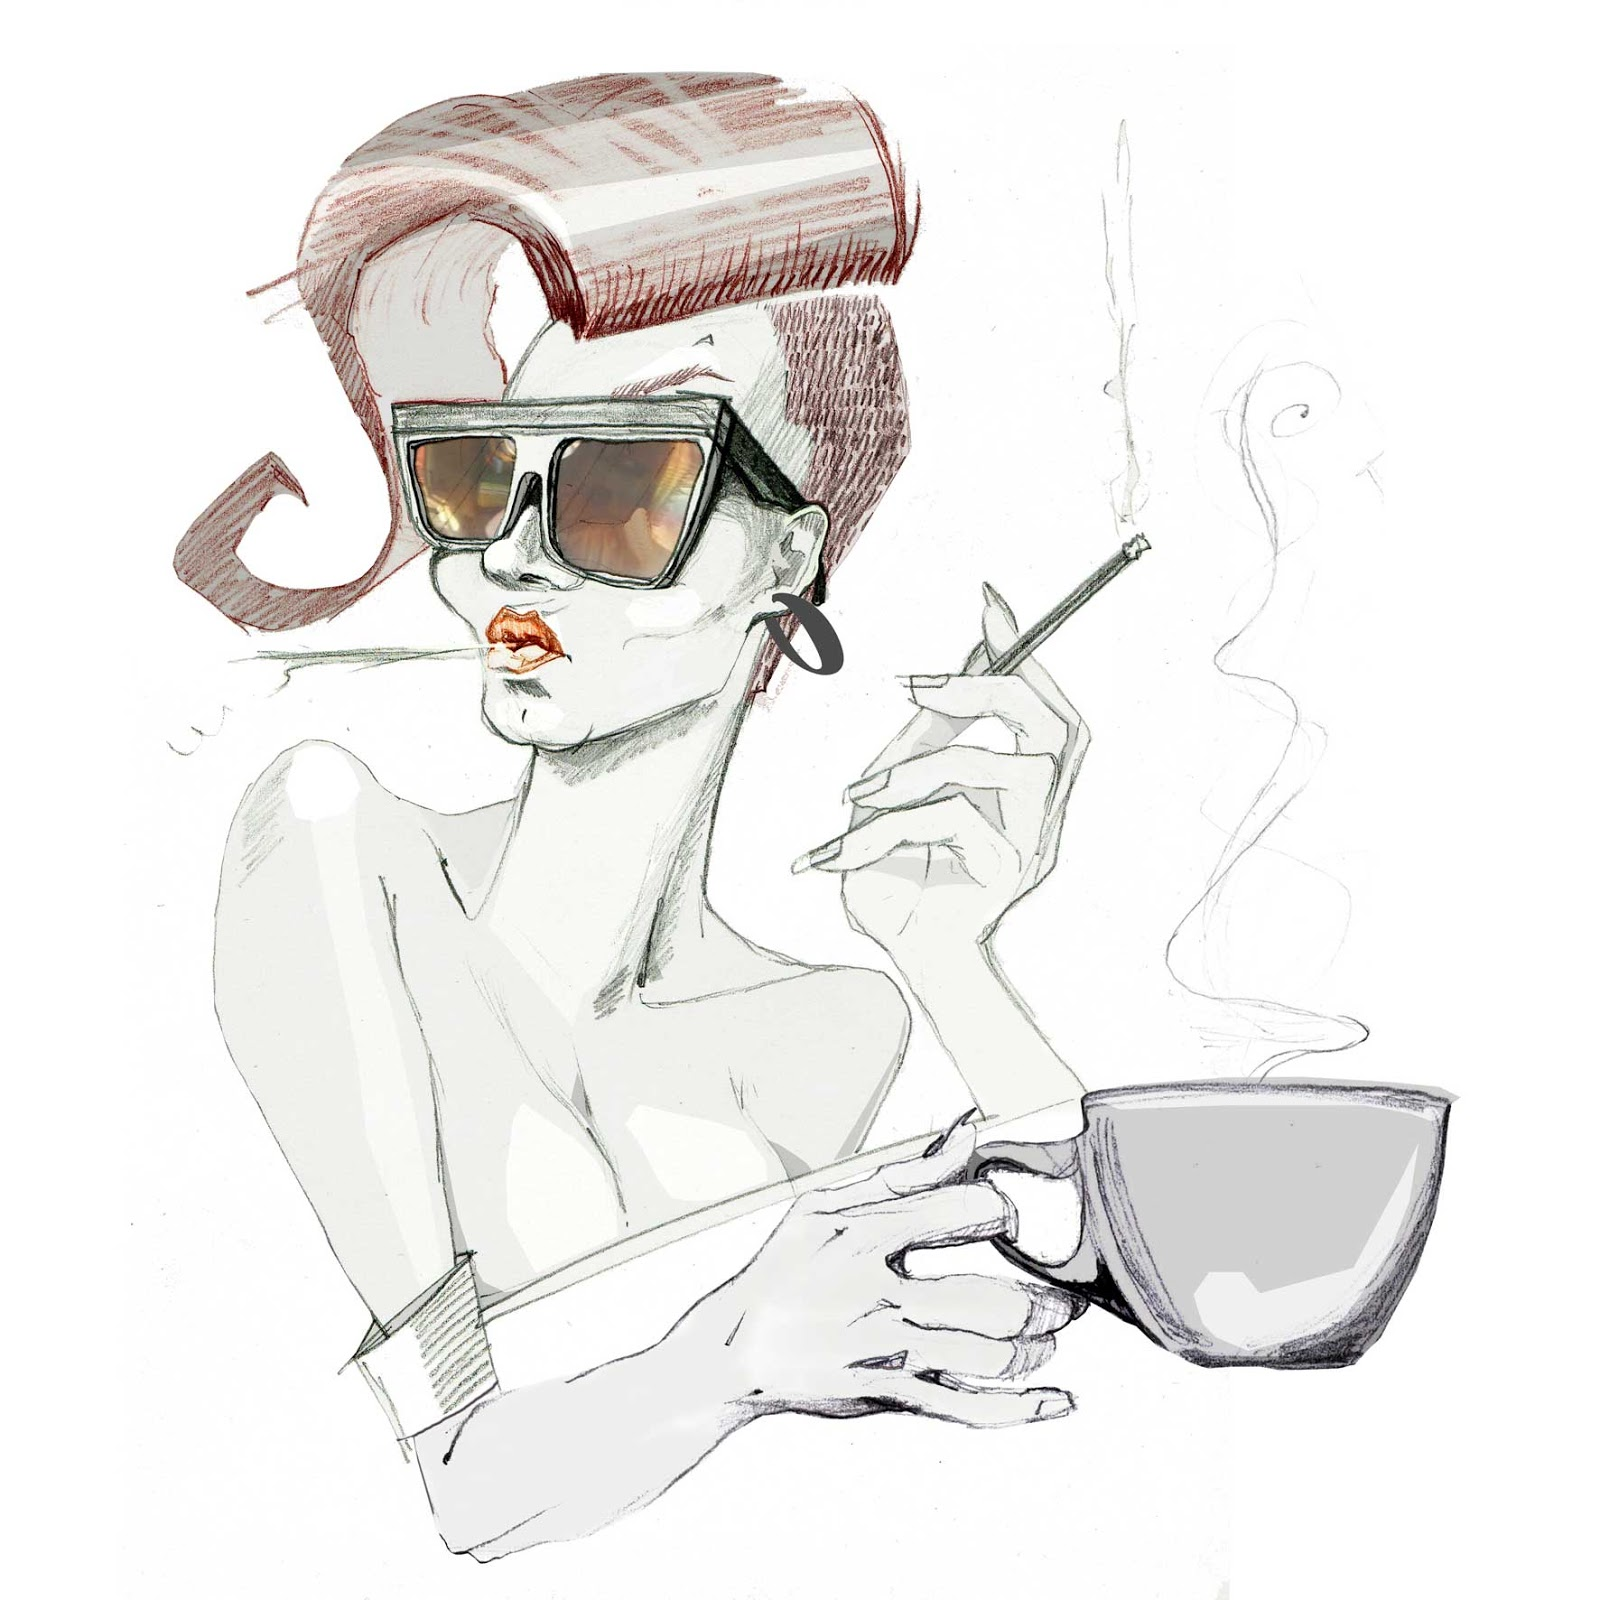 ilustracje make up kobieta kobiece Urbaniak portrety ilustracja na blogi strony internetowe do artykułów wierszy opowiadań illustration for magazines articles books blogs poems woman wit coffe and smoke cigarettes